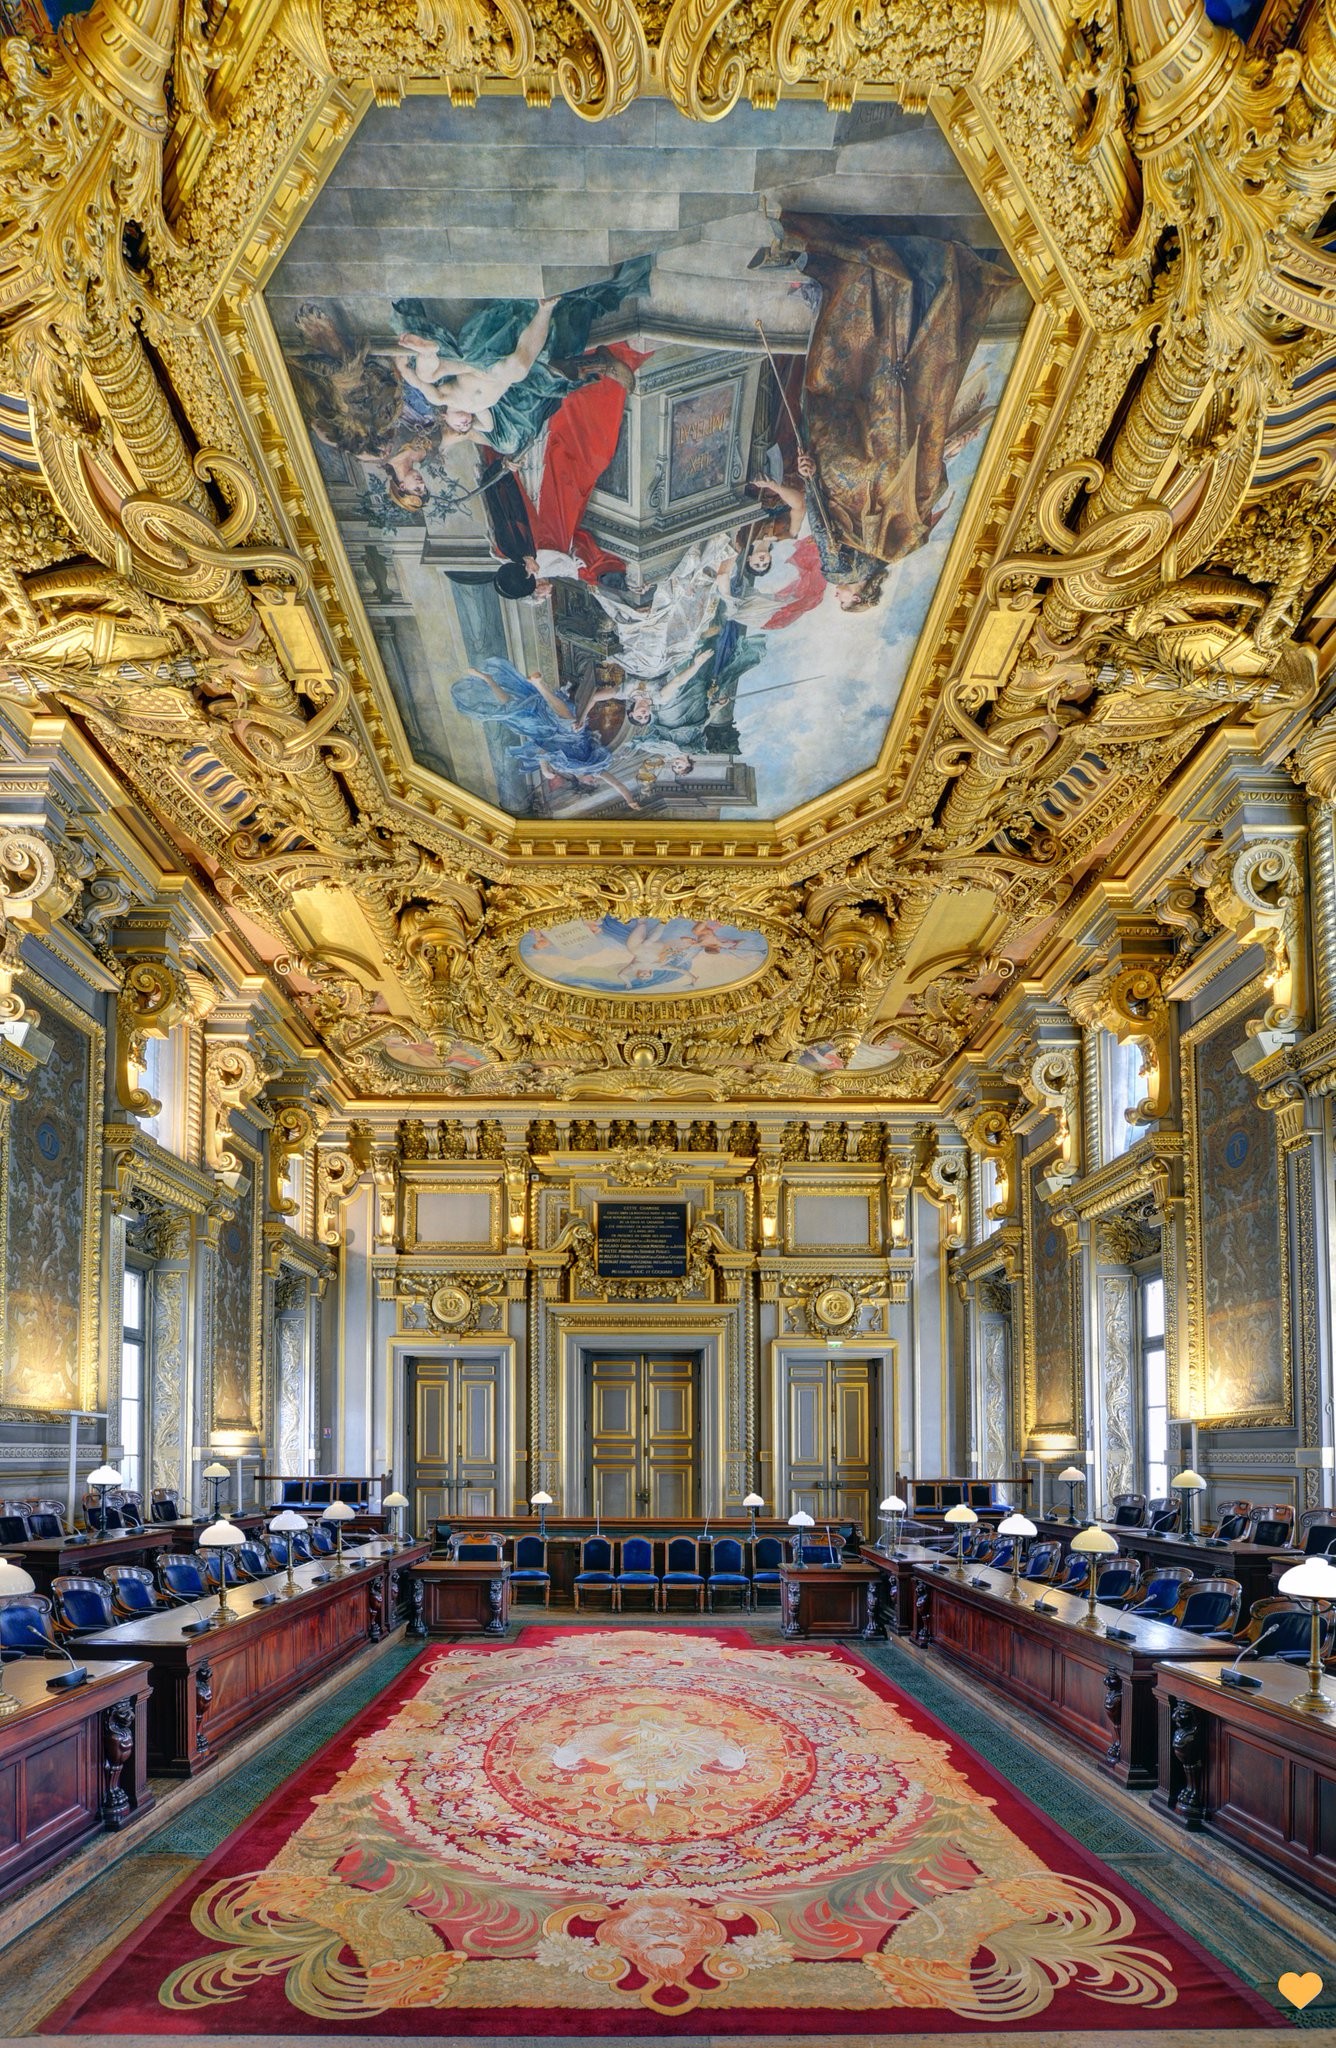 Cour de cassation on twitter lovemw tableau la for 6 chambres cour de cassation